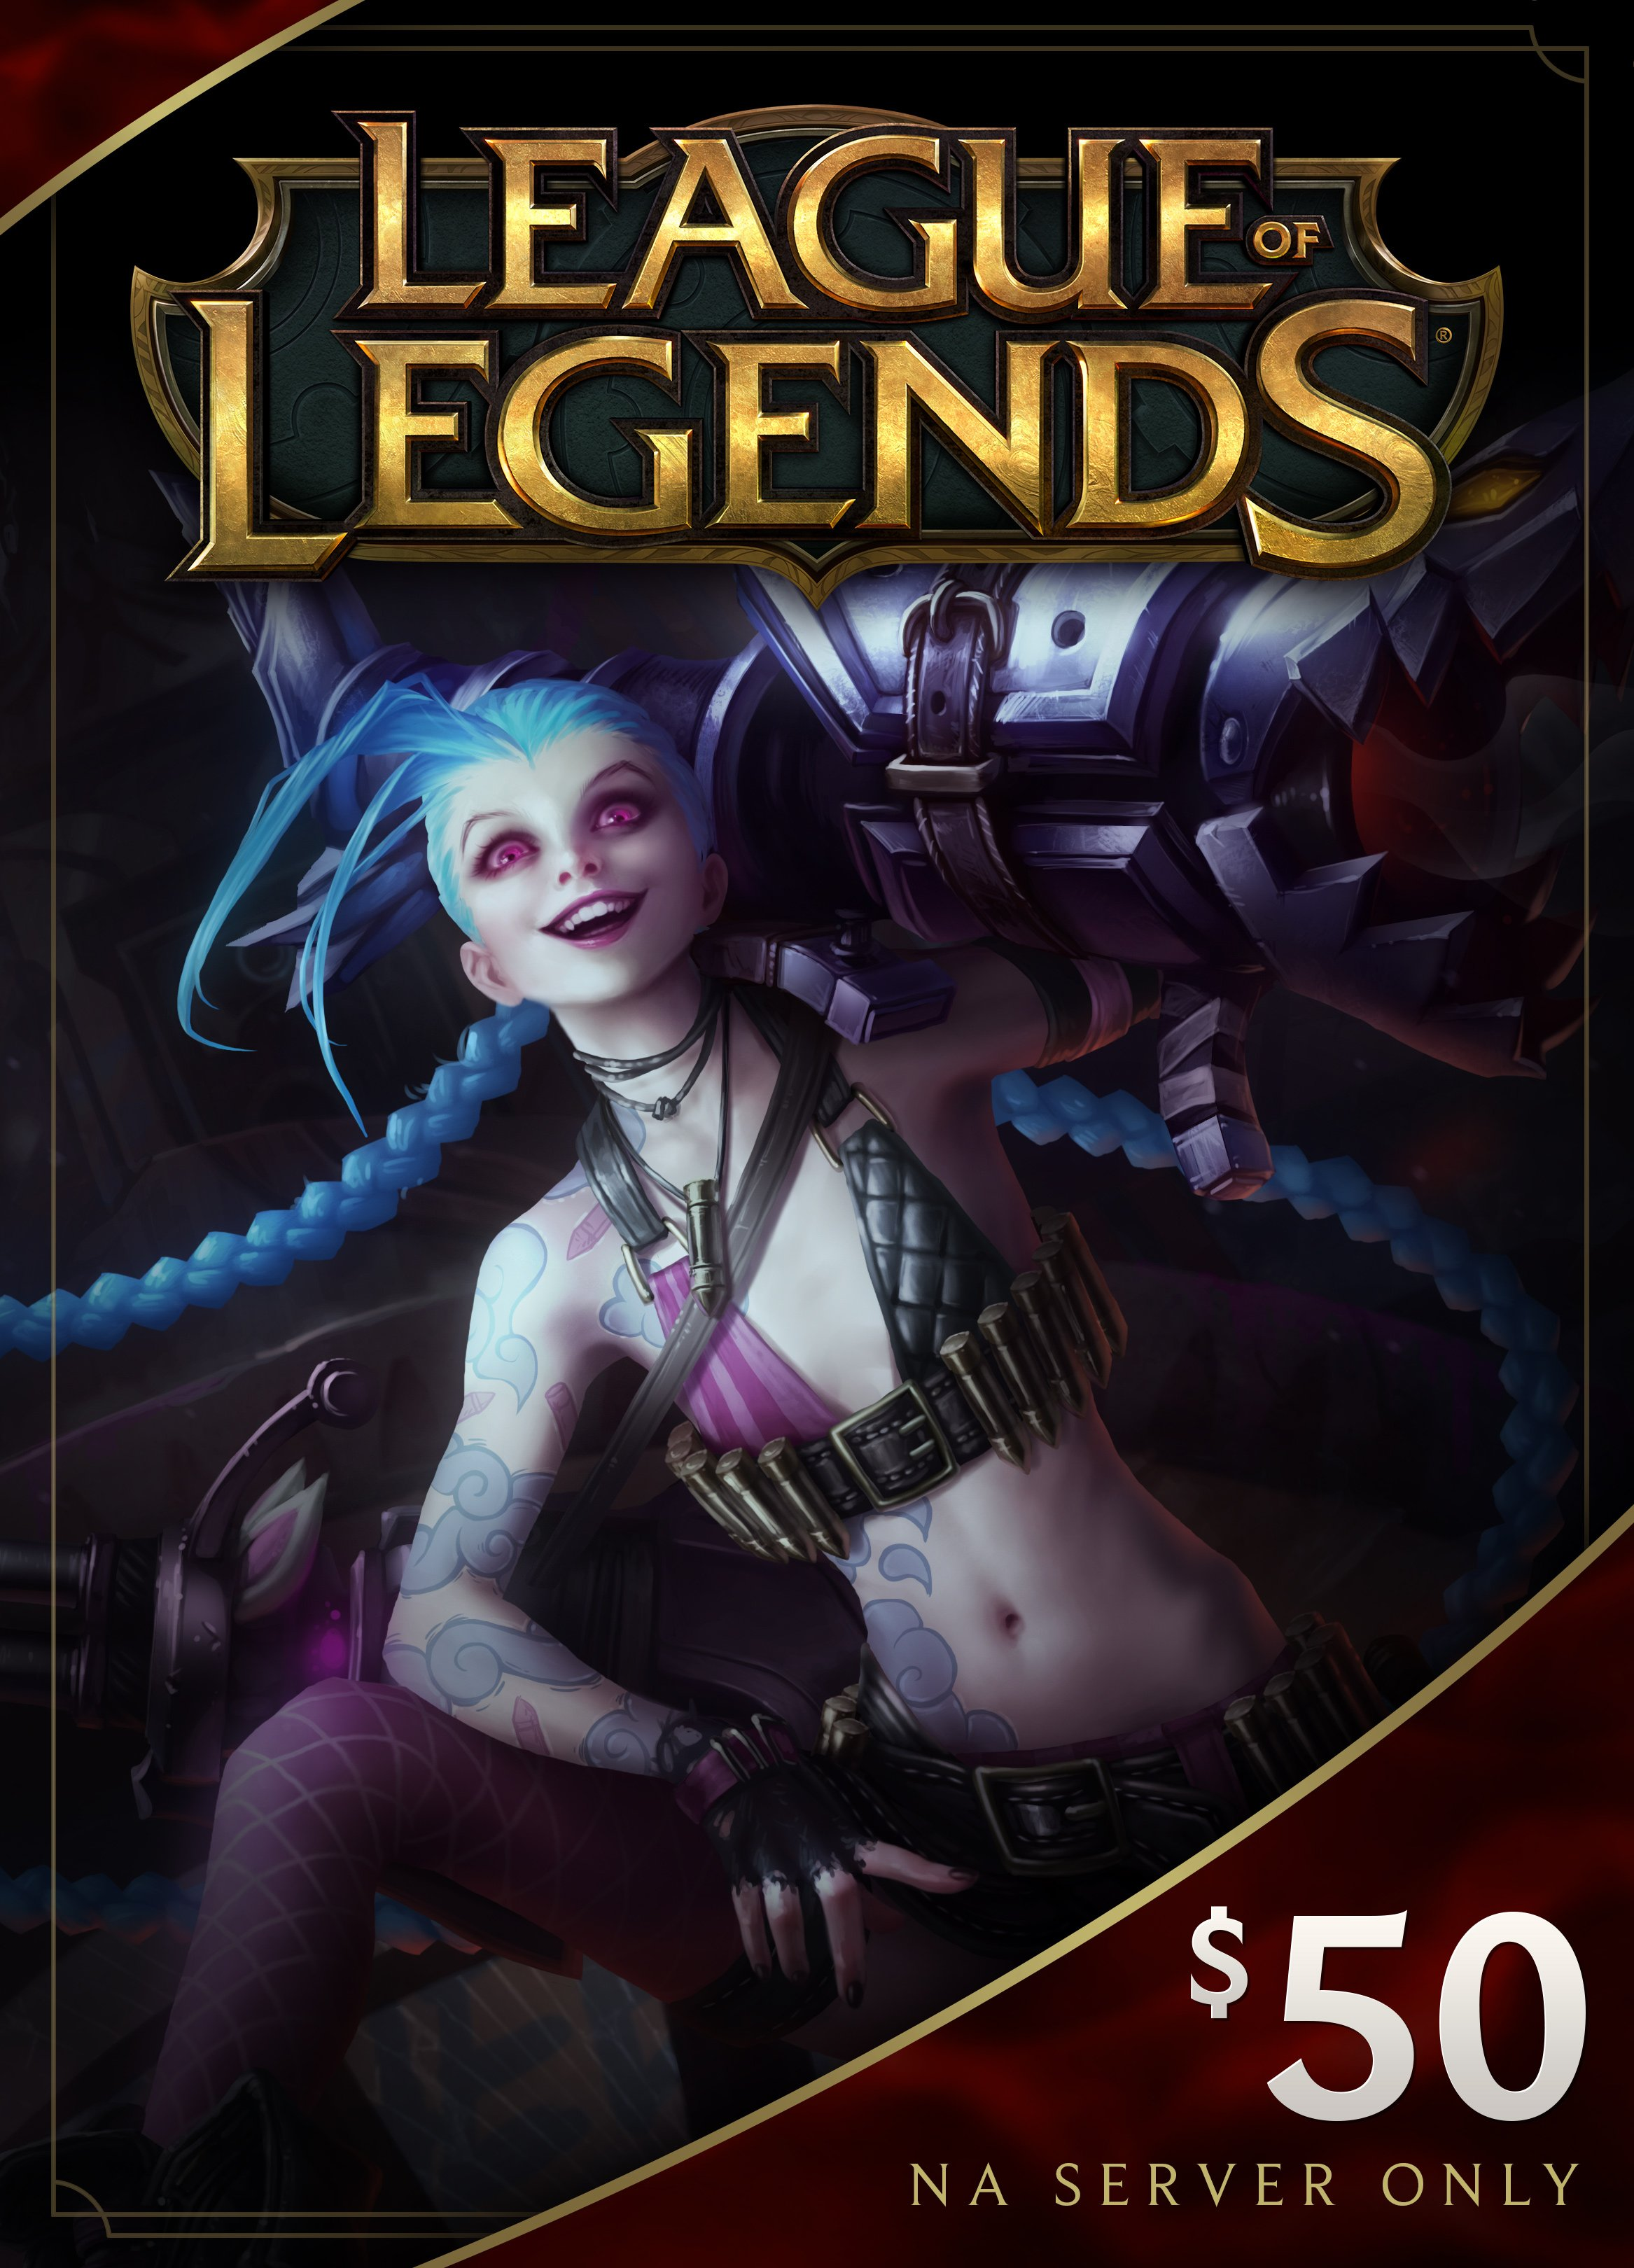 League of Legends $50 Gift Card – 7200 Riot Points - NA Server Only [Online Game Code] Million Gift Chest